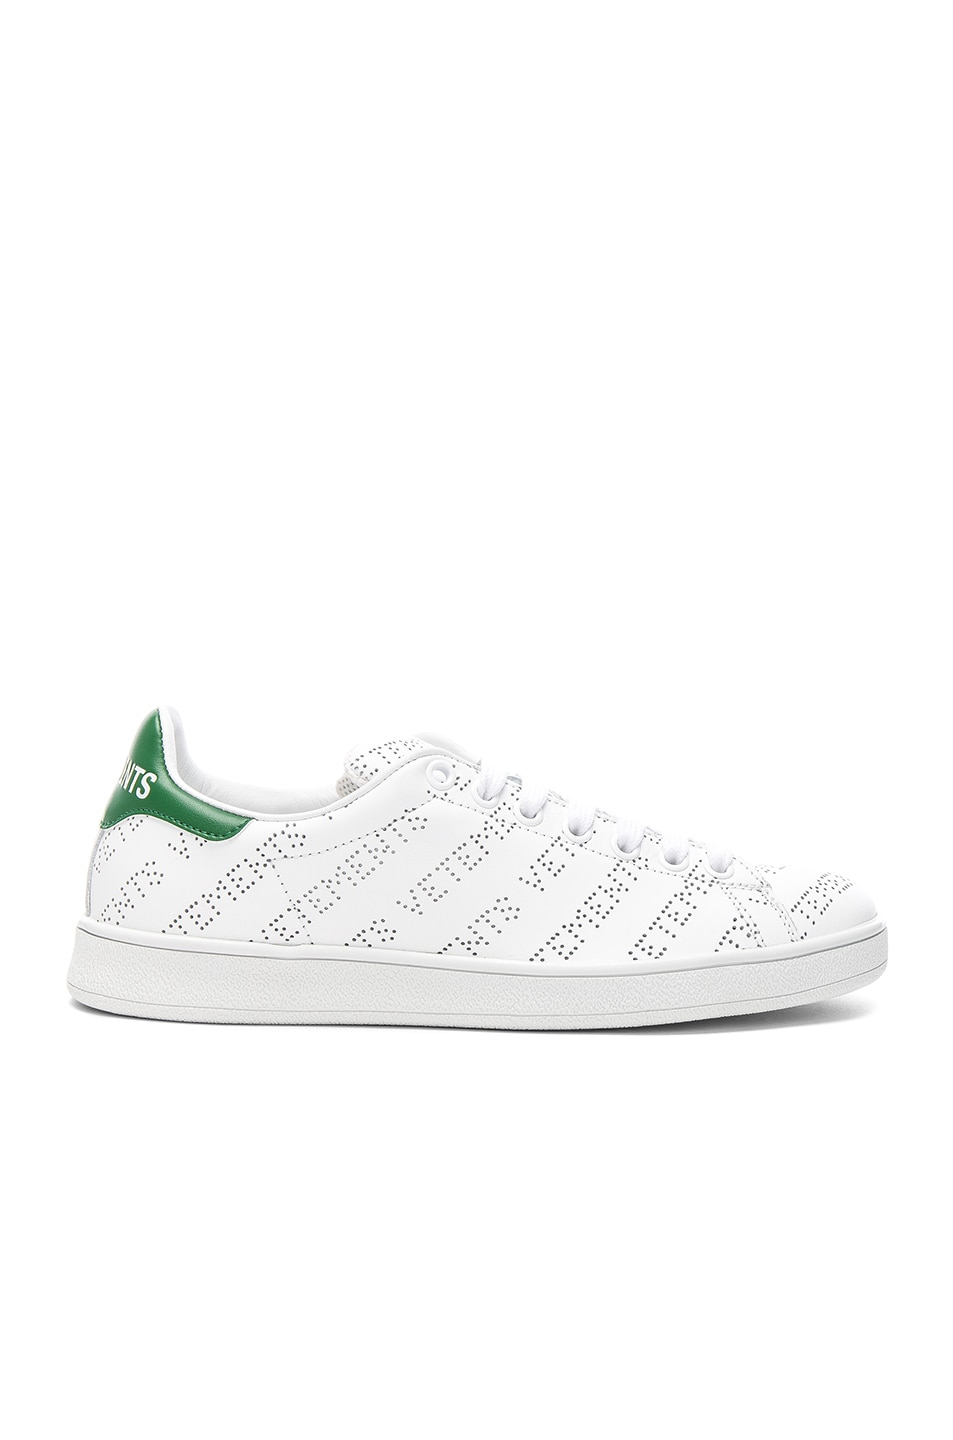 Image 1 of VETEMENTS Perforated Sneakers in White & Green